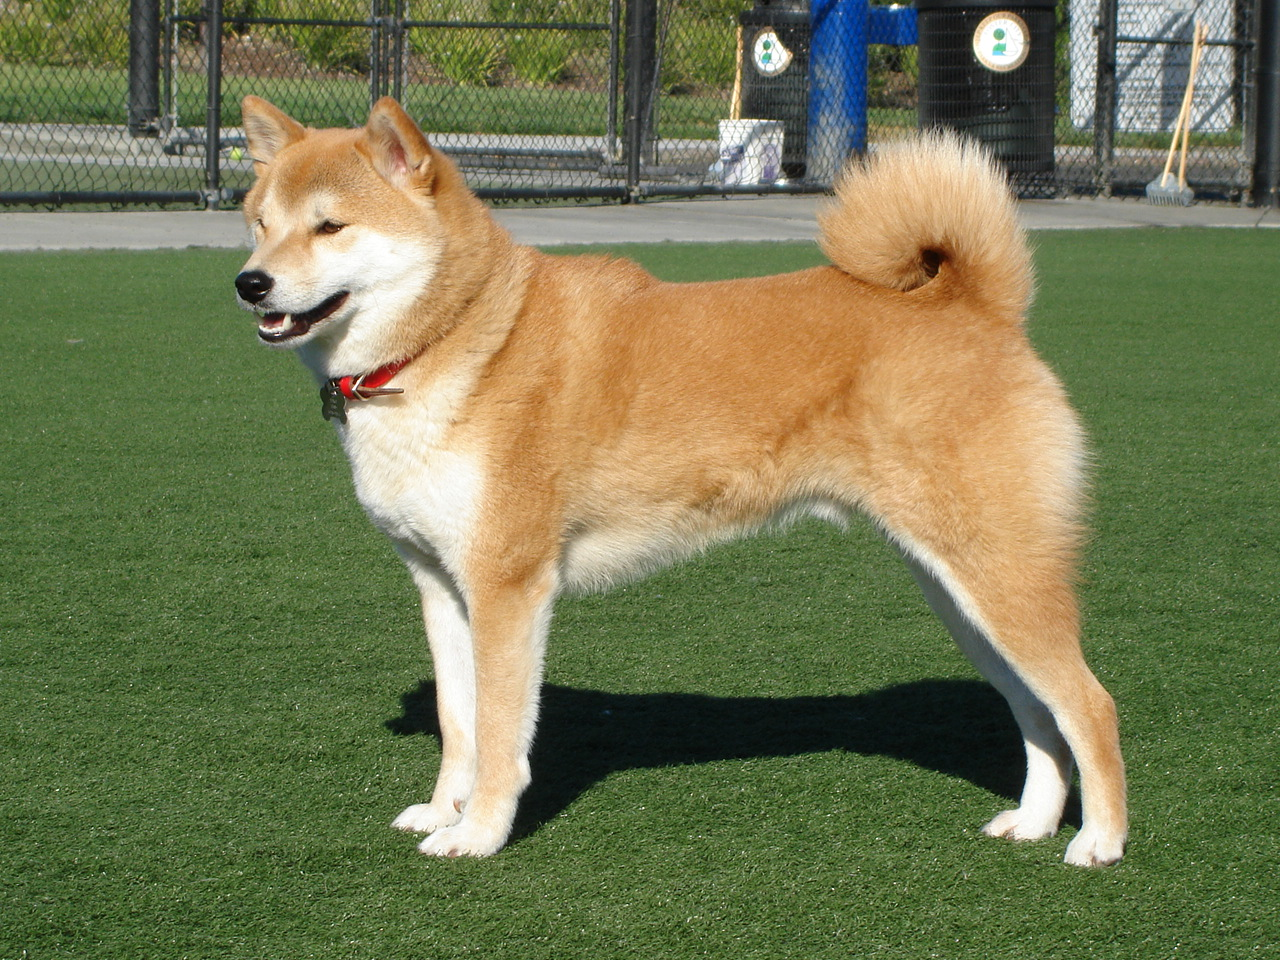 A shiba inu dog outside on grass